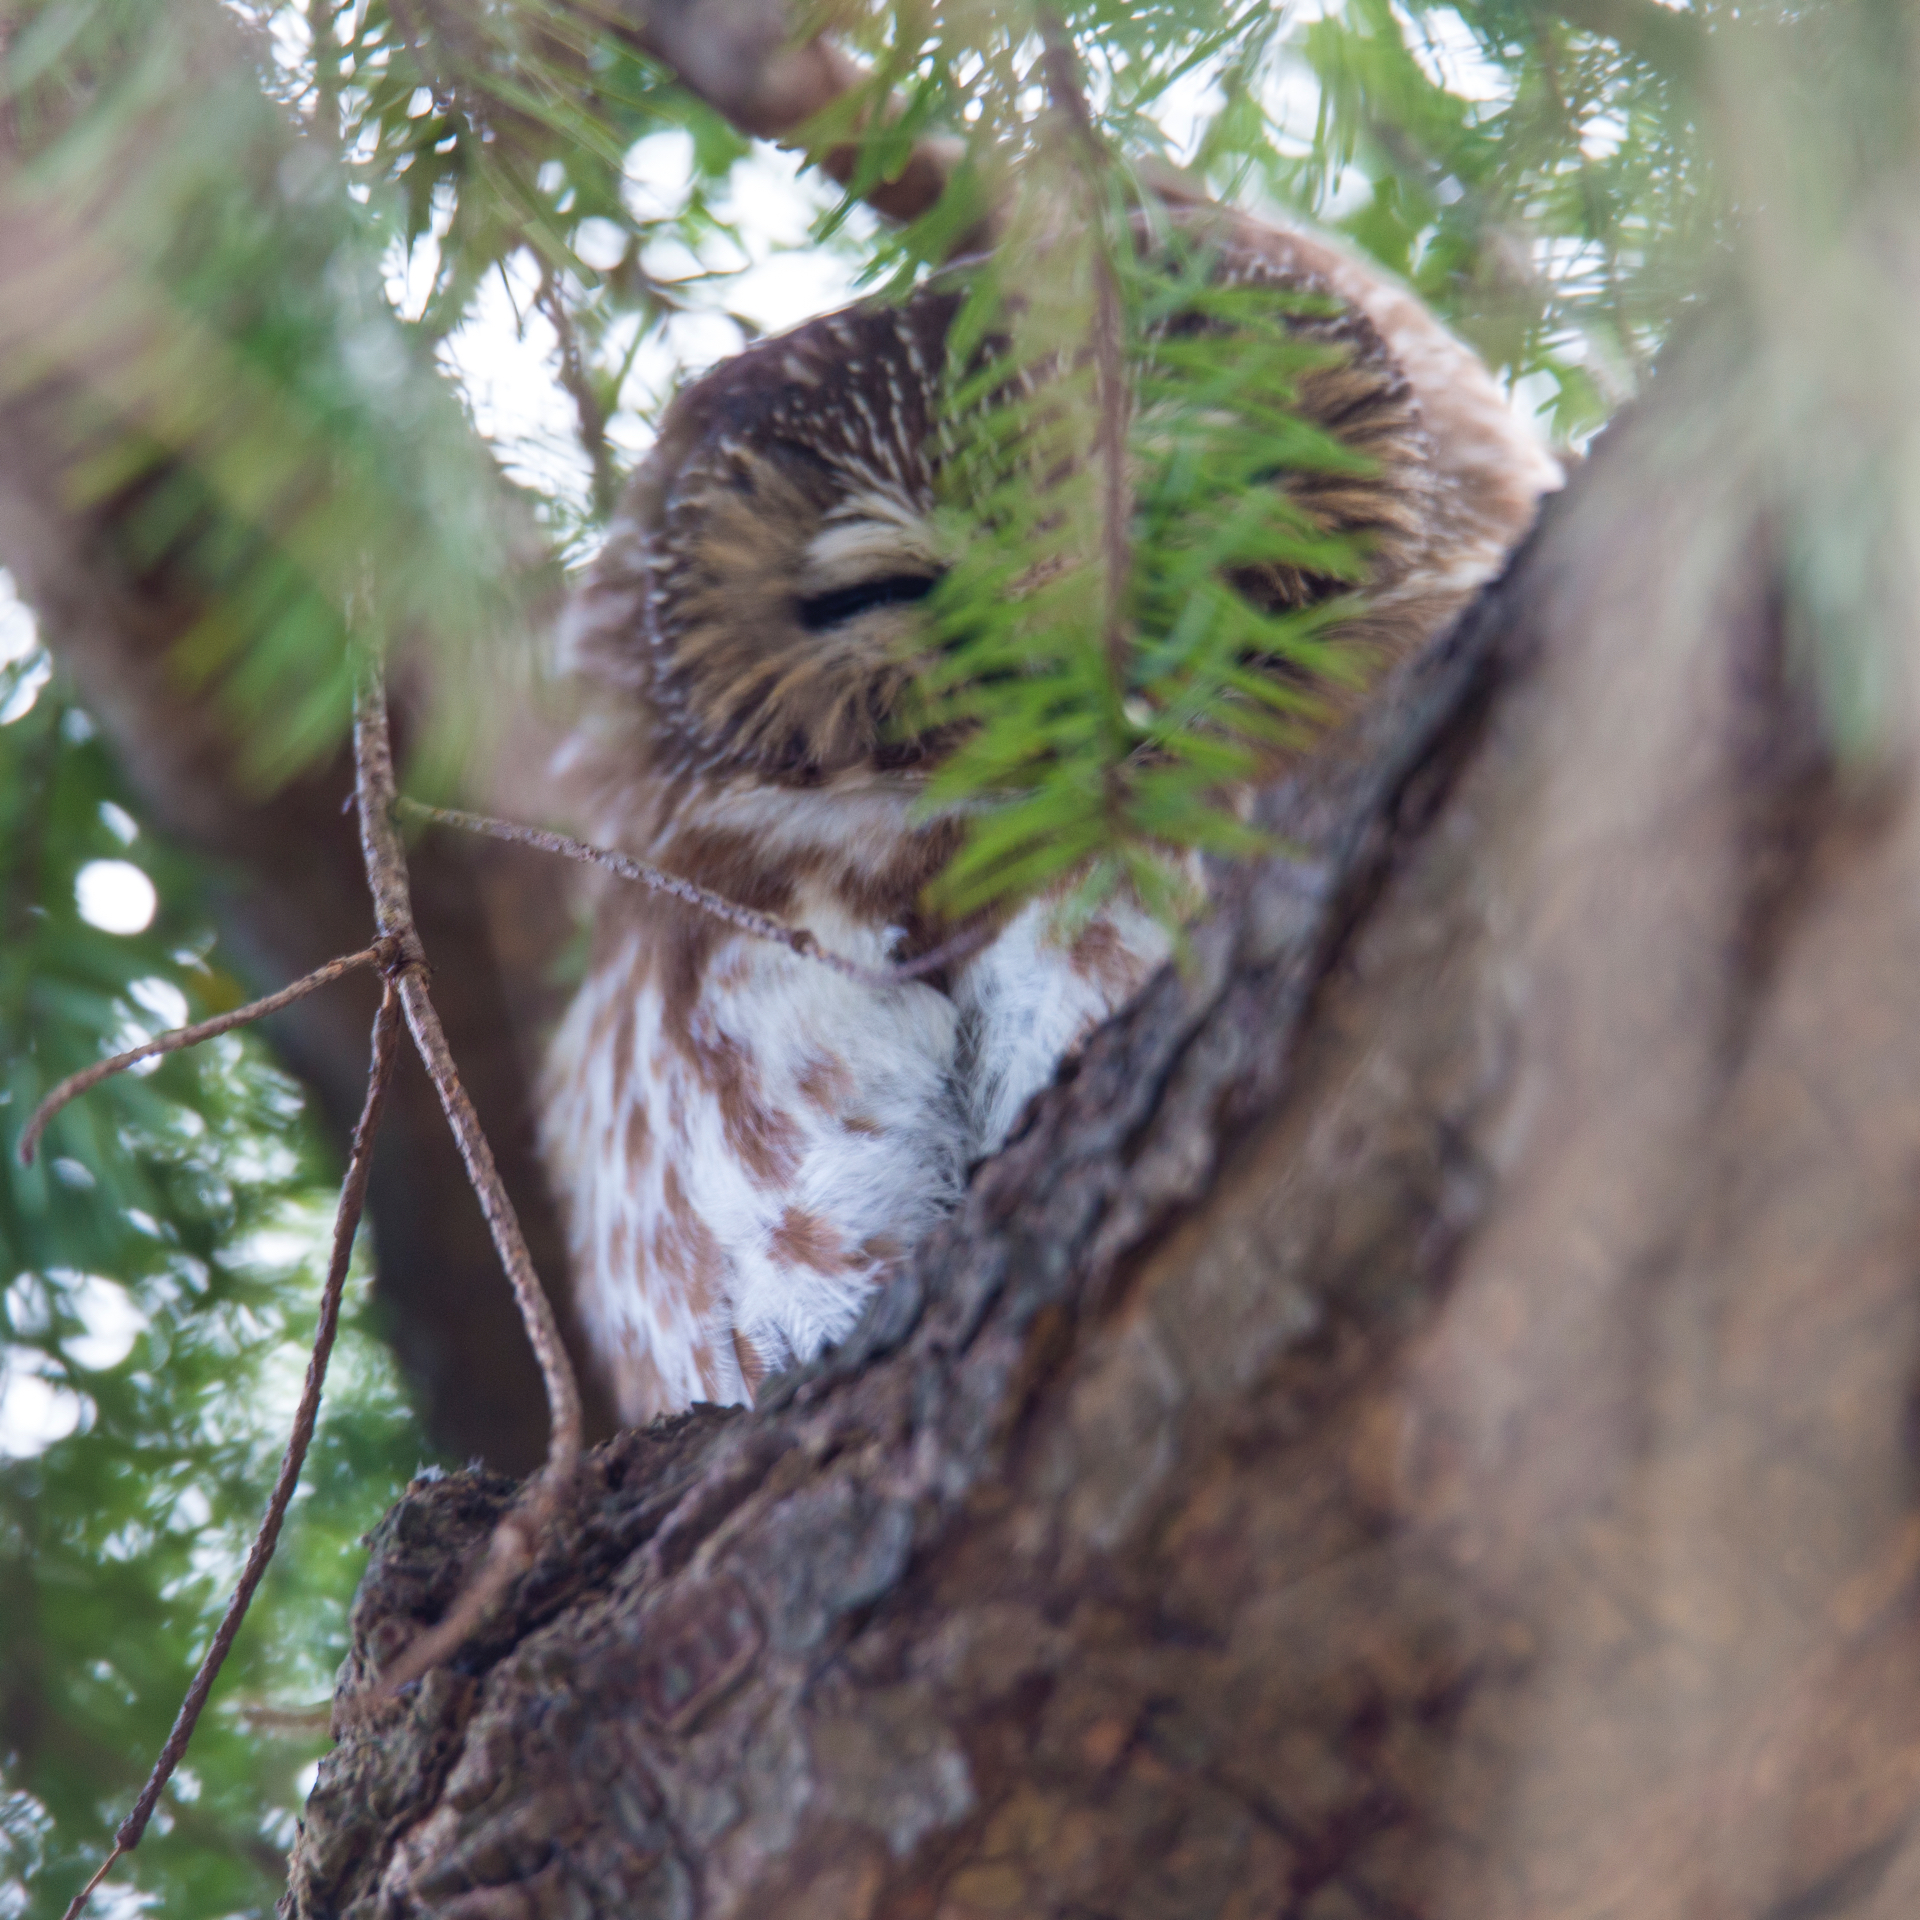 We saw two saw-whet owls! Only one was in a spot where you could get a shot.